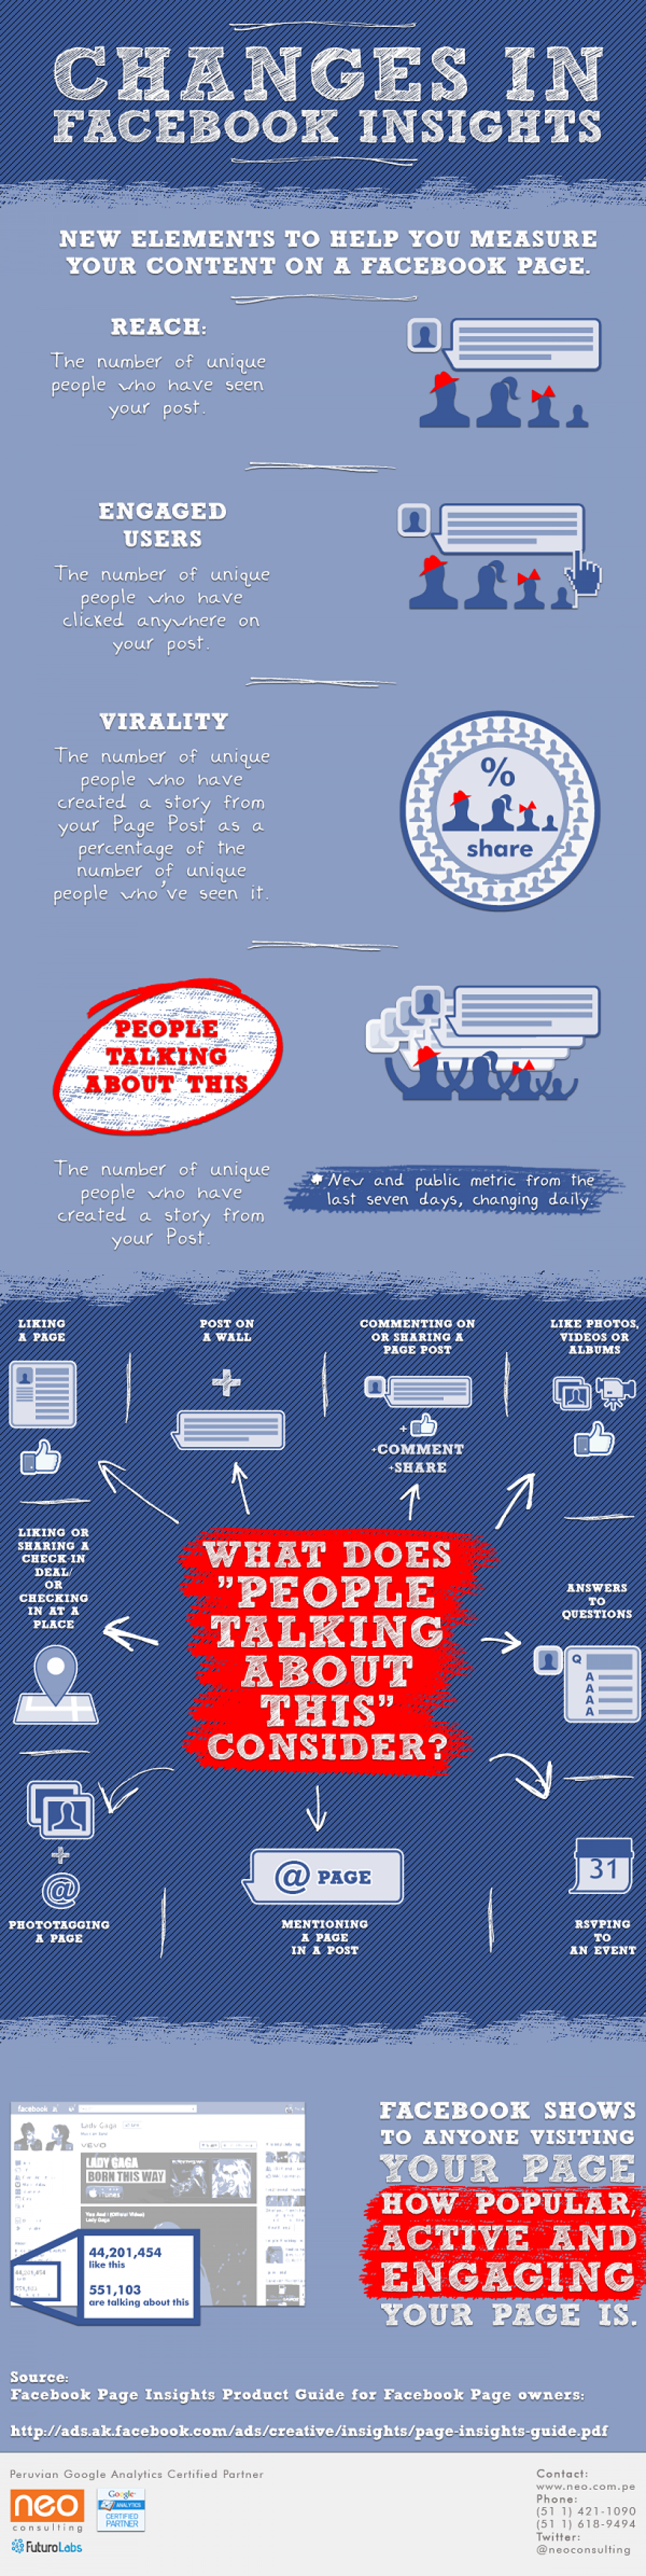 Changes in facebook insights Infographic